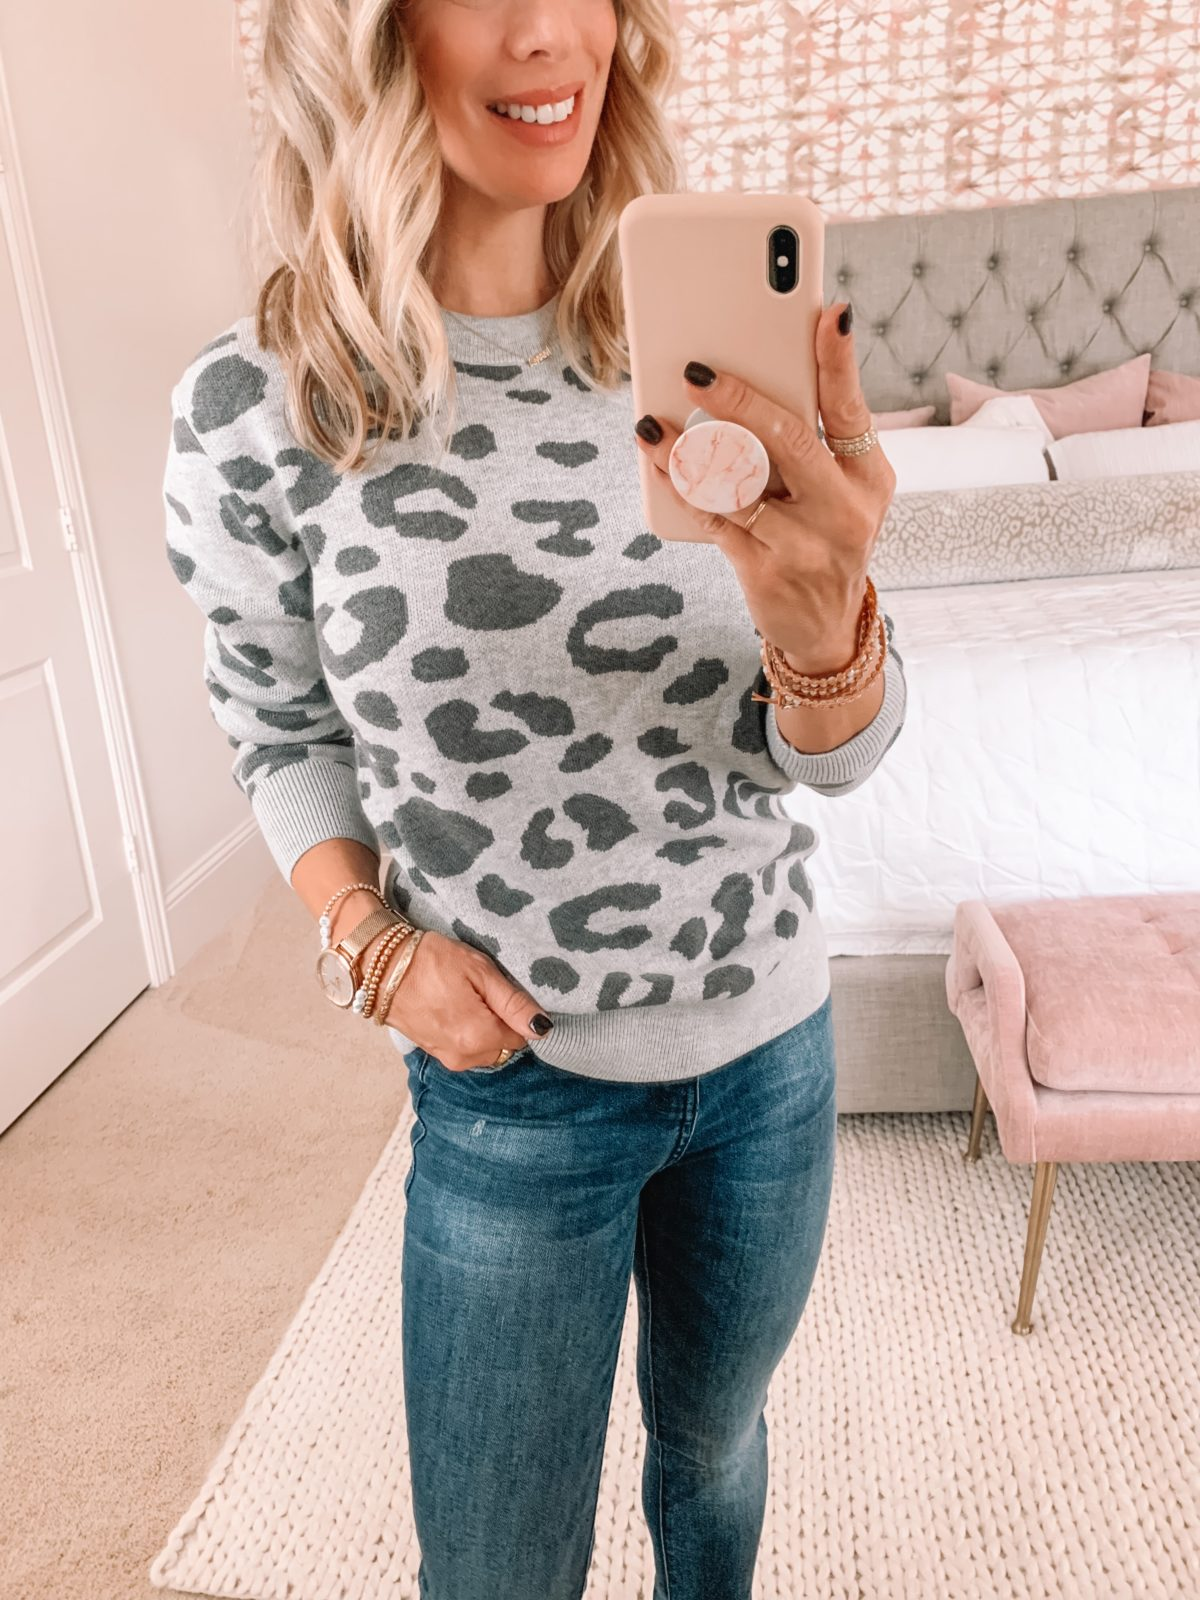 Amazon Fashion Faves, Grey Leopard Sweatshirt, Jeans, Booties